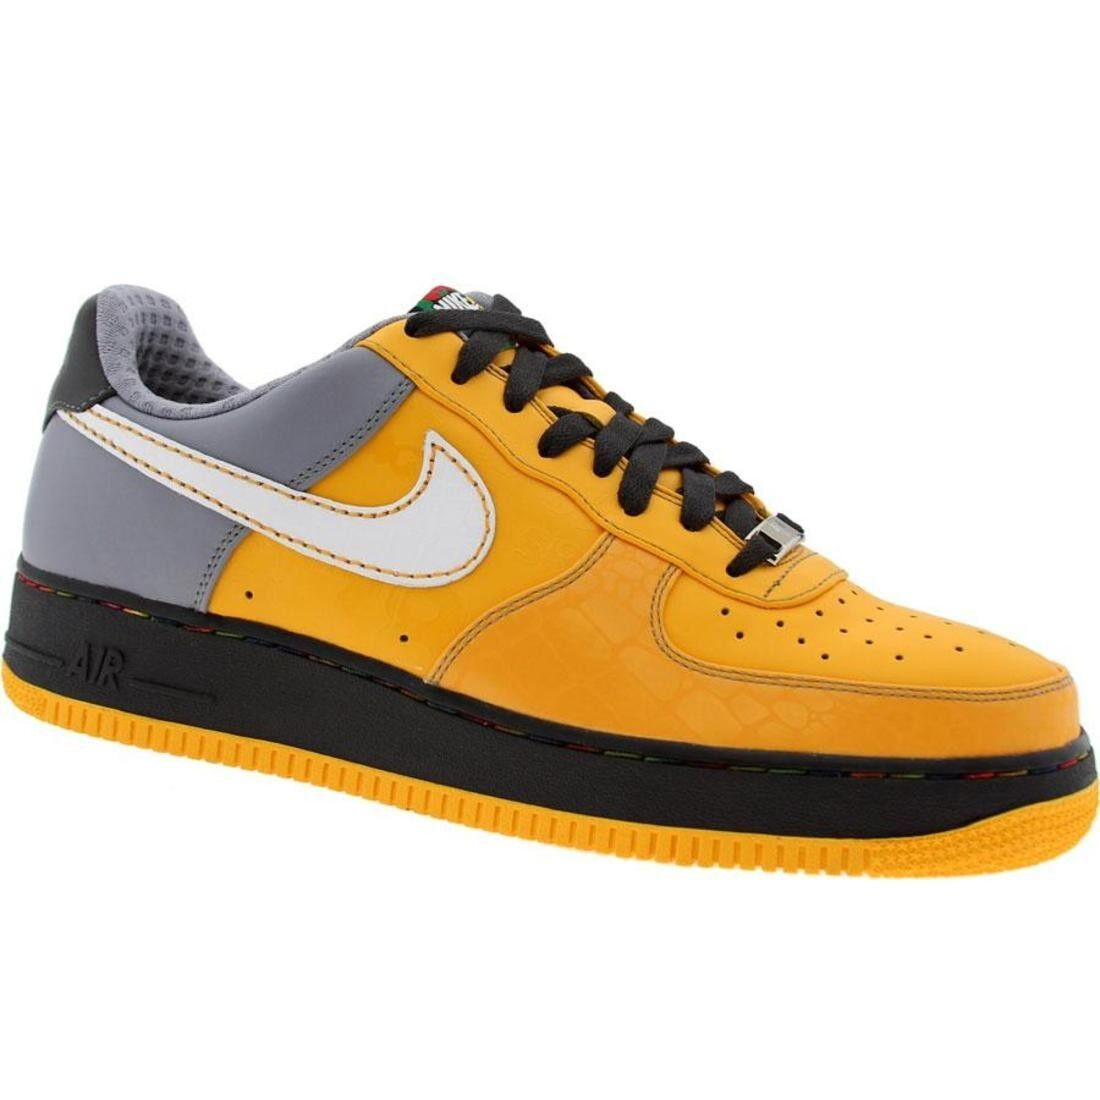 315180-711 Nike Men Air Force 1 07 Low Premium New York City Edition (pro gold